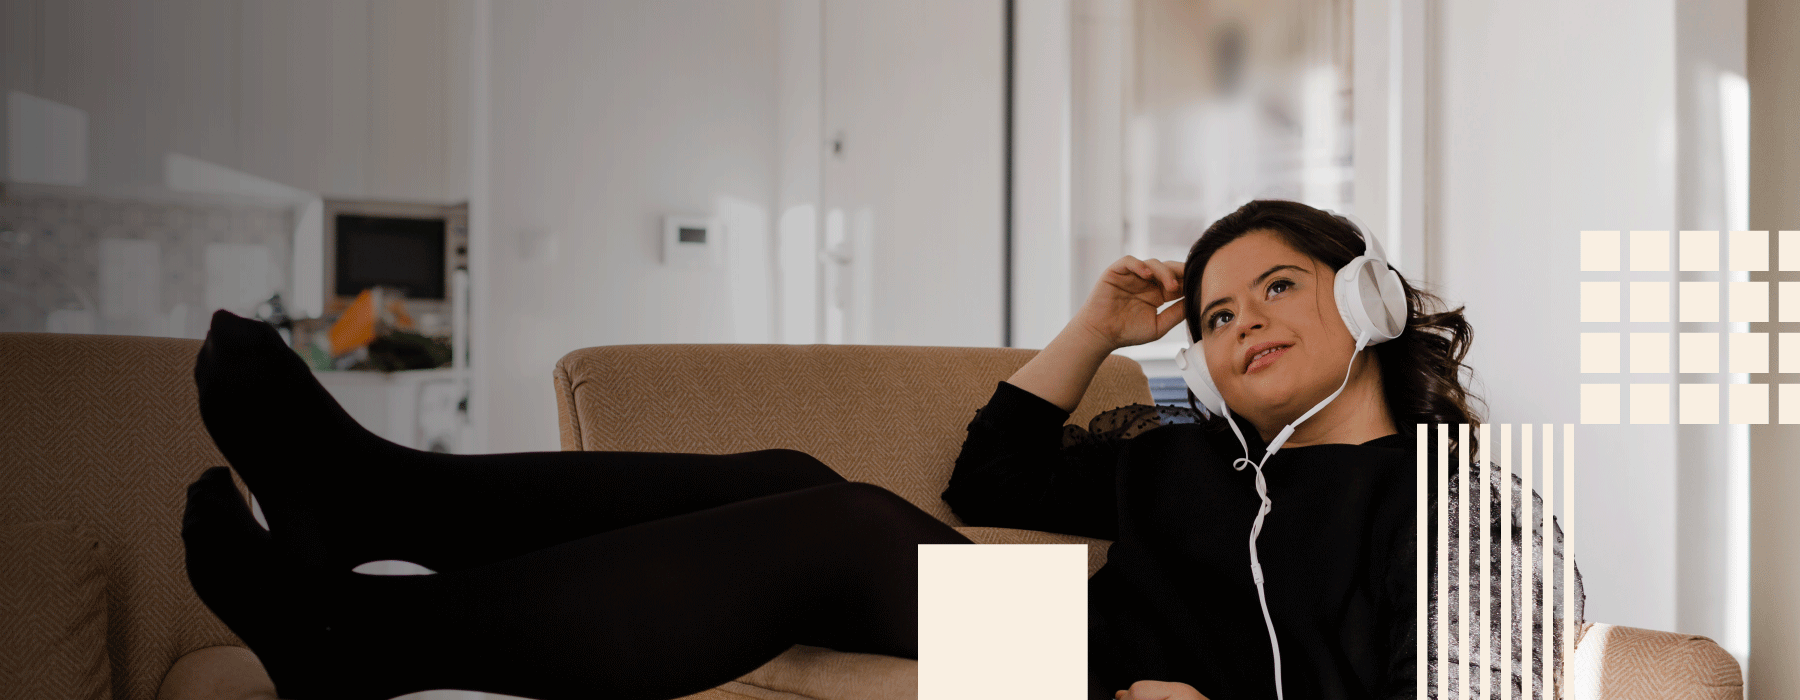 lifestyle image of a woman laying on a couch and listening to music through in-ear headphones